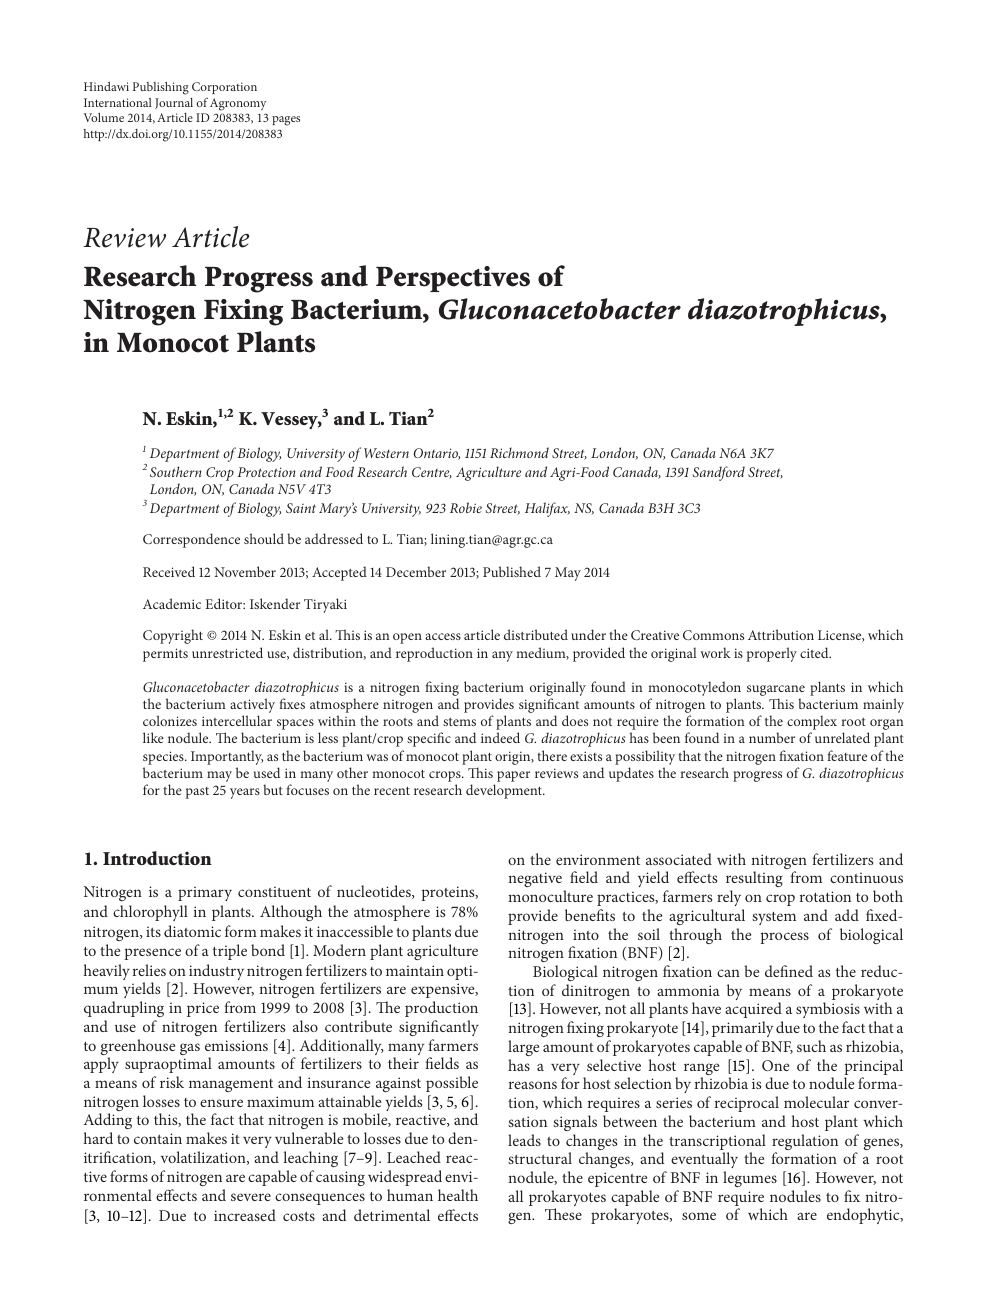 Research papers about nitrogen thesis bachelor schreiben